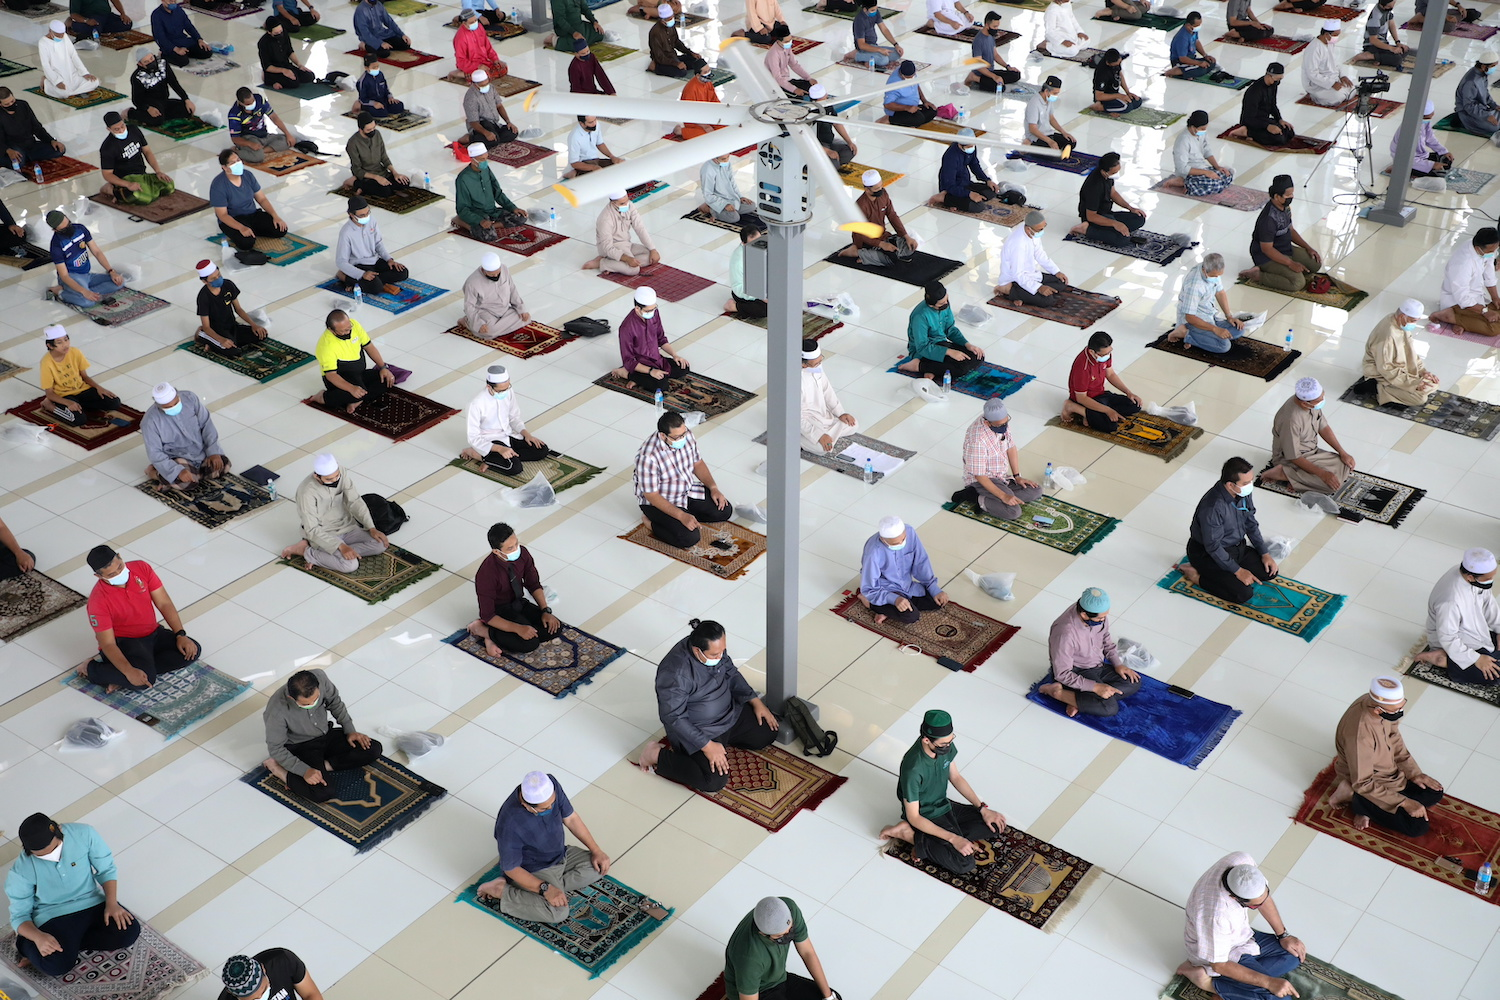 Worshippers follow social distancing measures while praying inside a mosque in Putrajaya, Malaysia on Friday. (Reuters Photo)